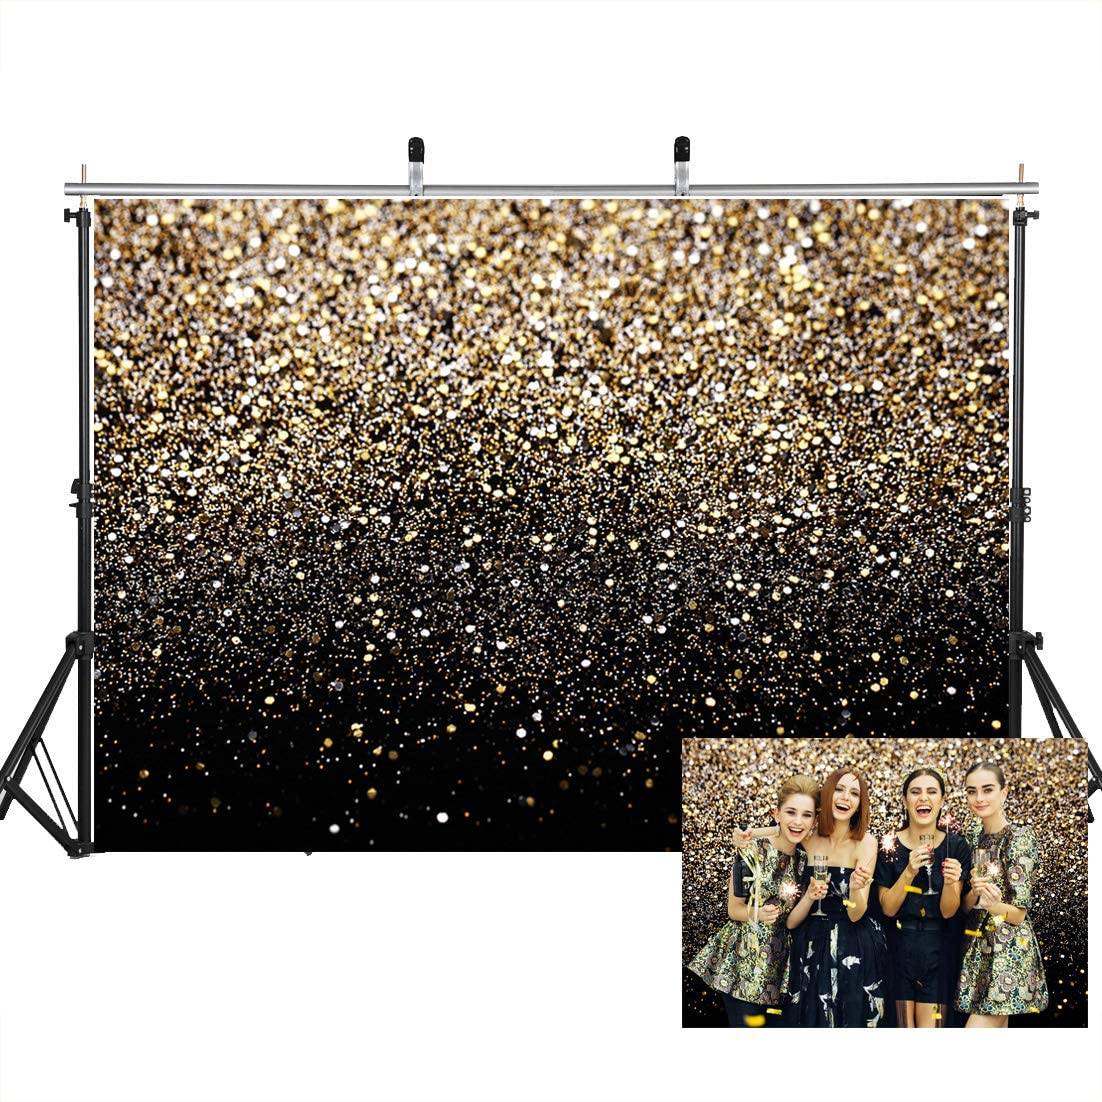 SJOLOON 7X5ft Glitter Backdrop Golden Spots Backdrop Vinyl Photography Backdrop Vintage Astract Glitter Background for Family Birthday Party Newborn Studio Props 11547